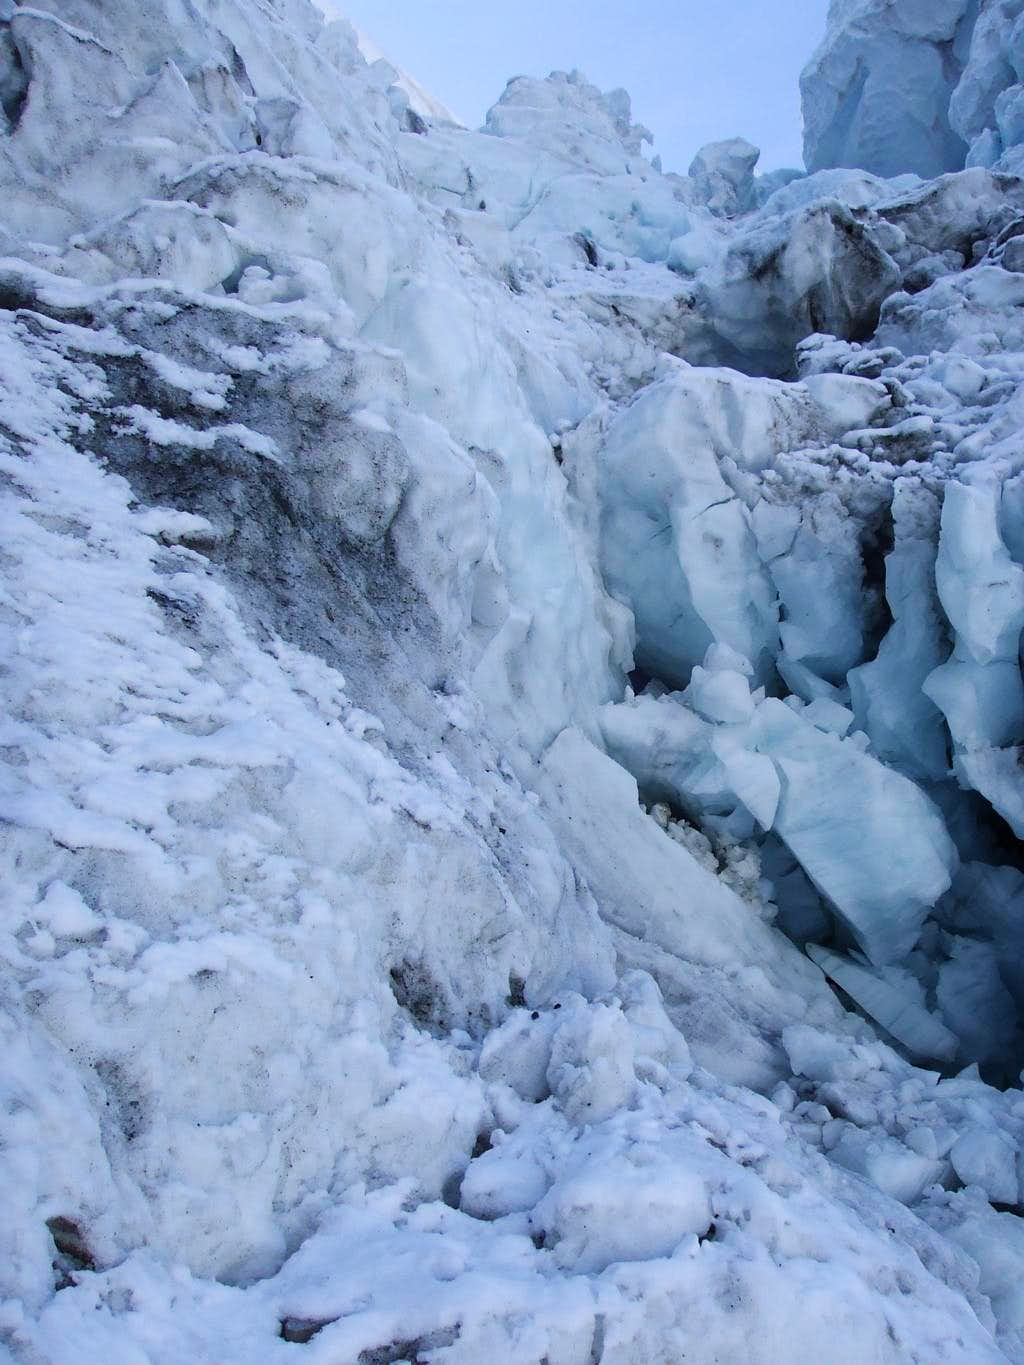 Seracs loomed in the entrance to the terrifying icefall